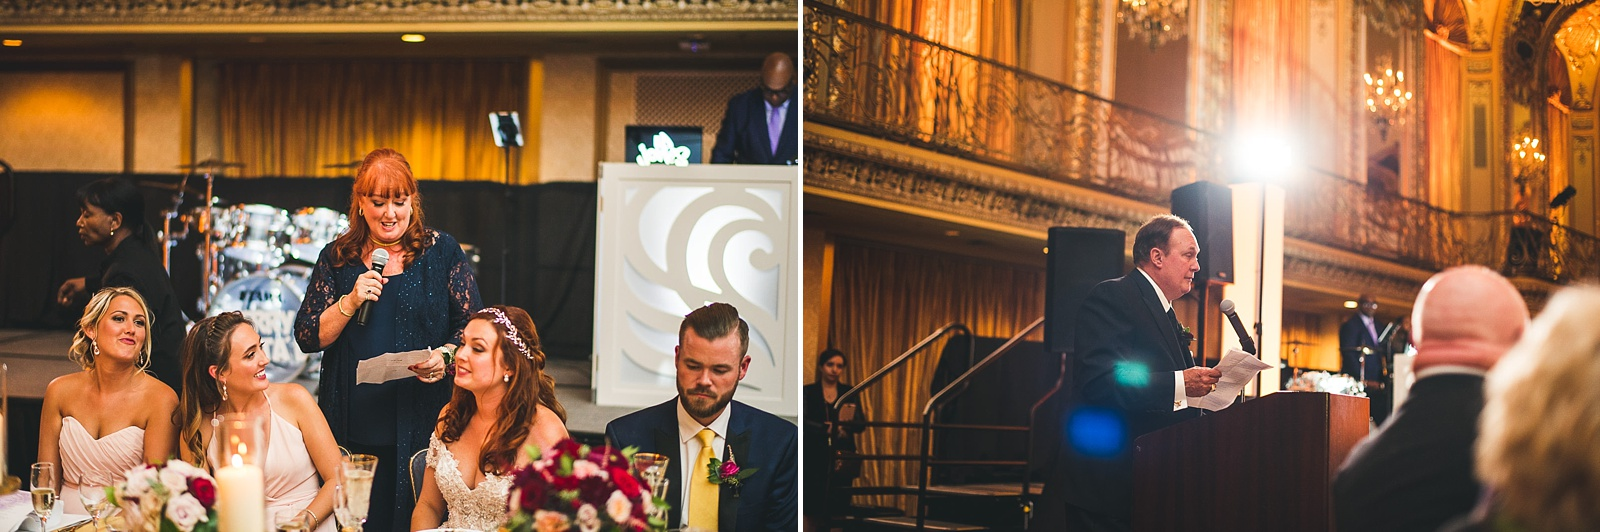 61 speeches during wedding - Hilton Chicago Wedding Photographer // Sarah + Aaron